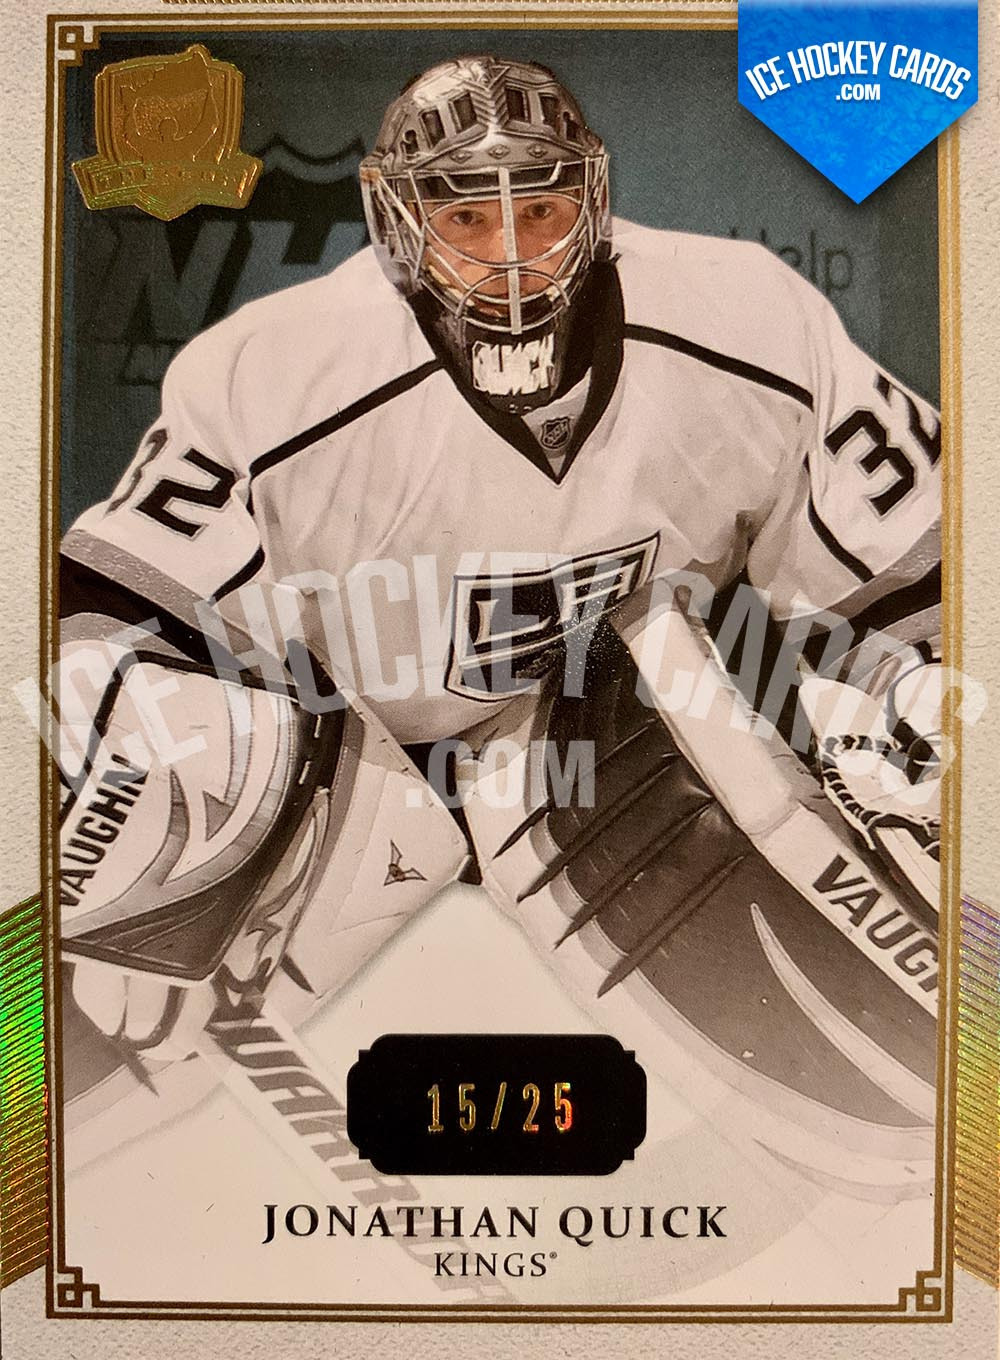 Upper Deck - The Cup 2013-14 - Jonathan Quick Gold Base Card # to 25